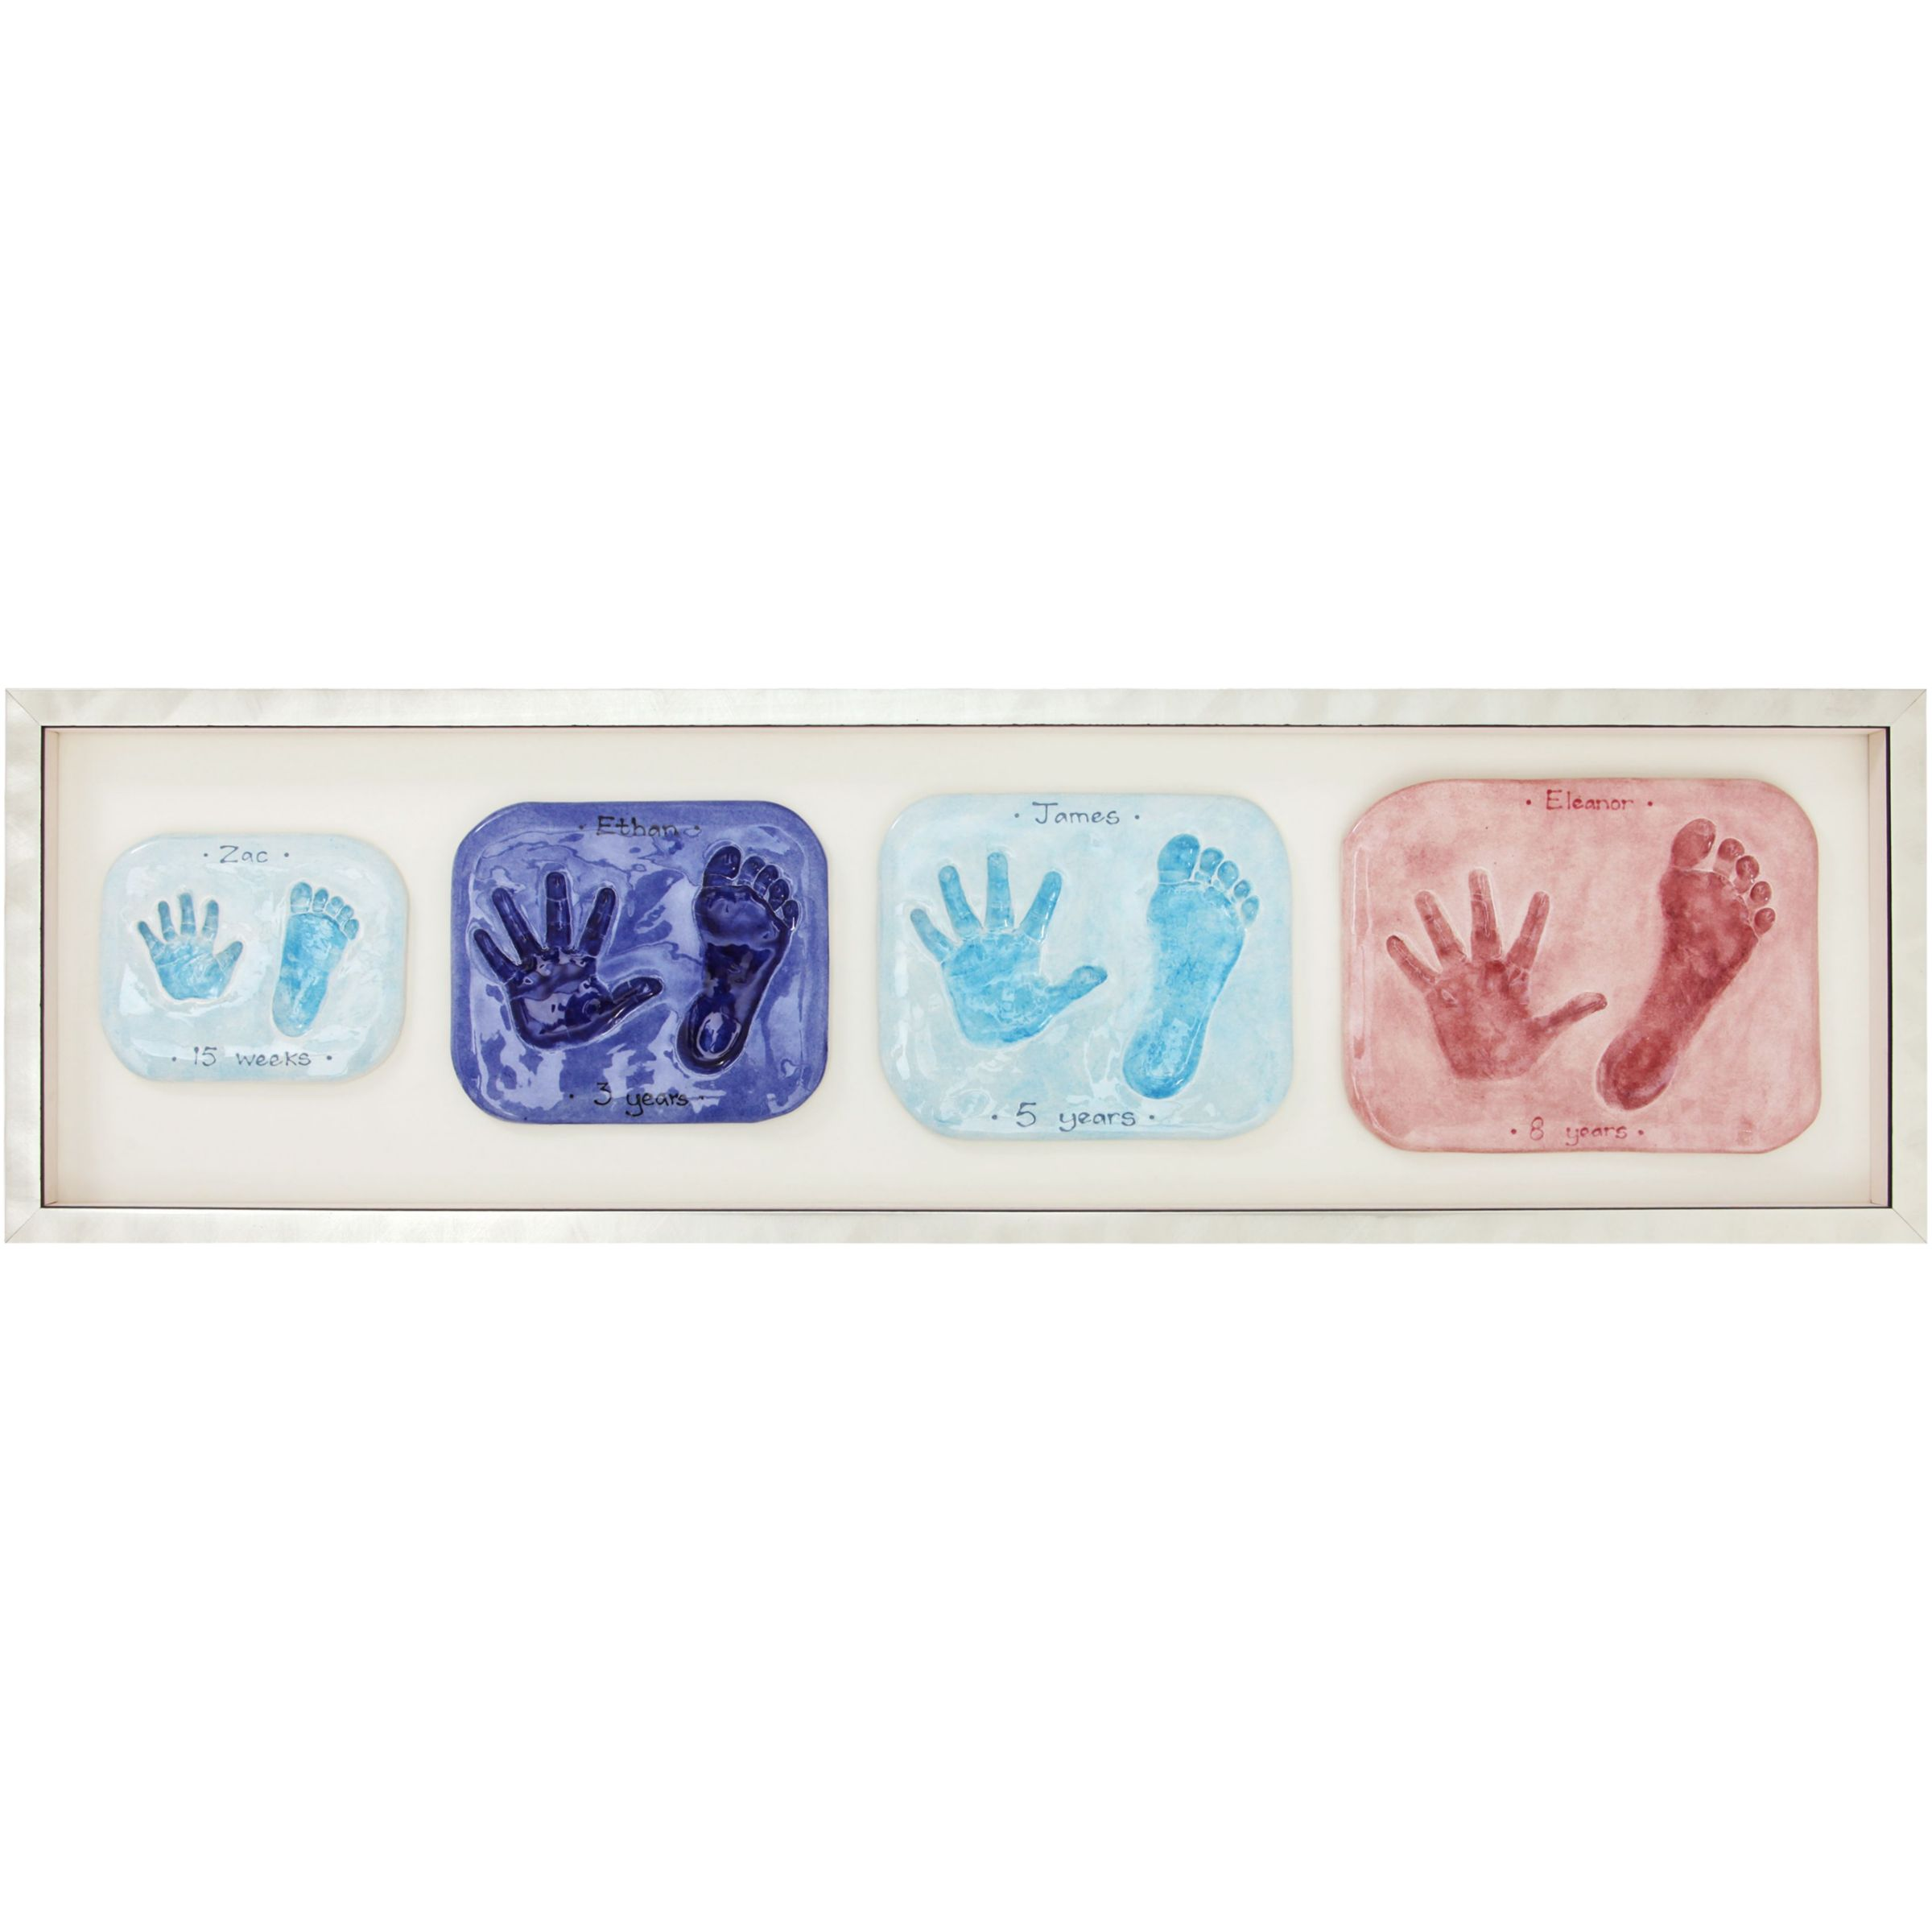 Imprints Gift Certificate, 4 Double Family Prints, Silver Frame